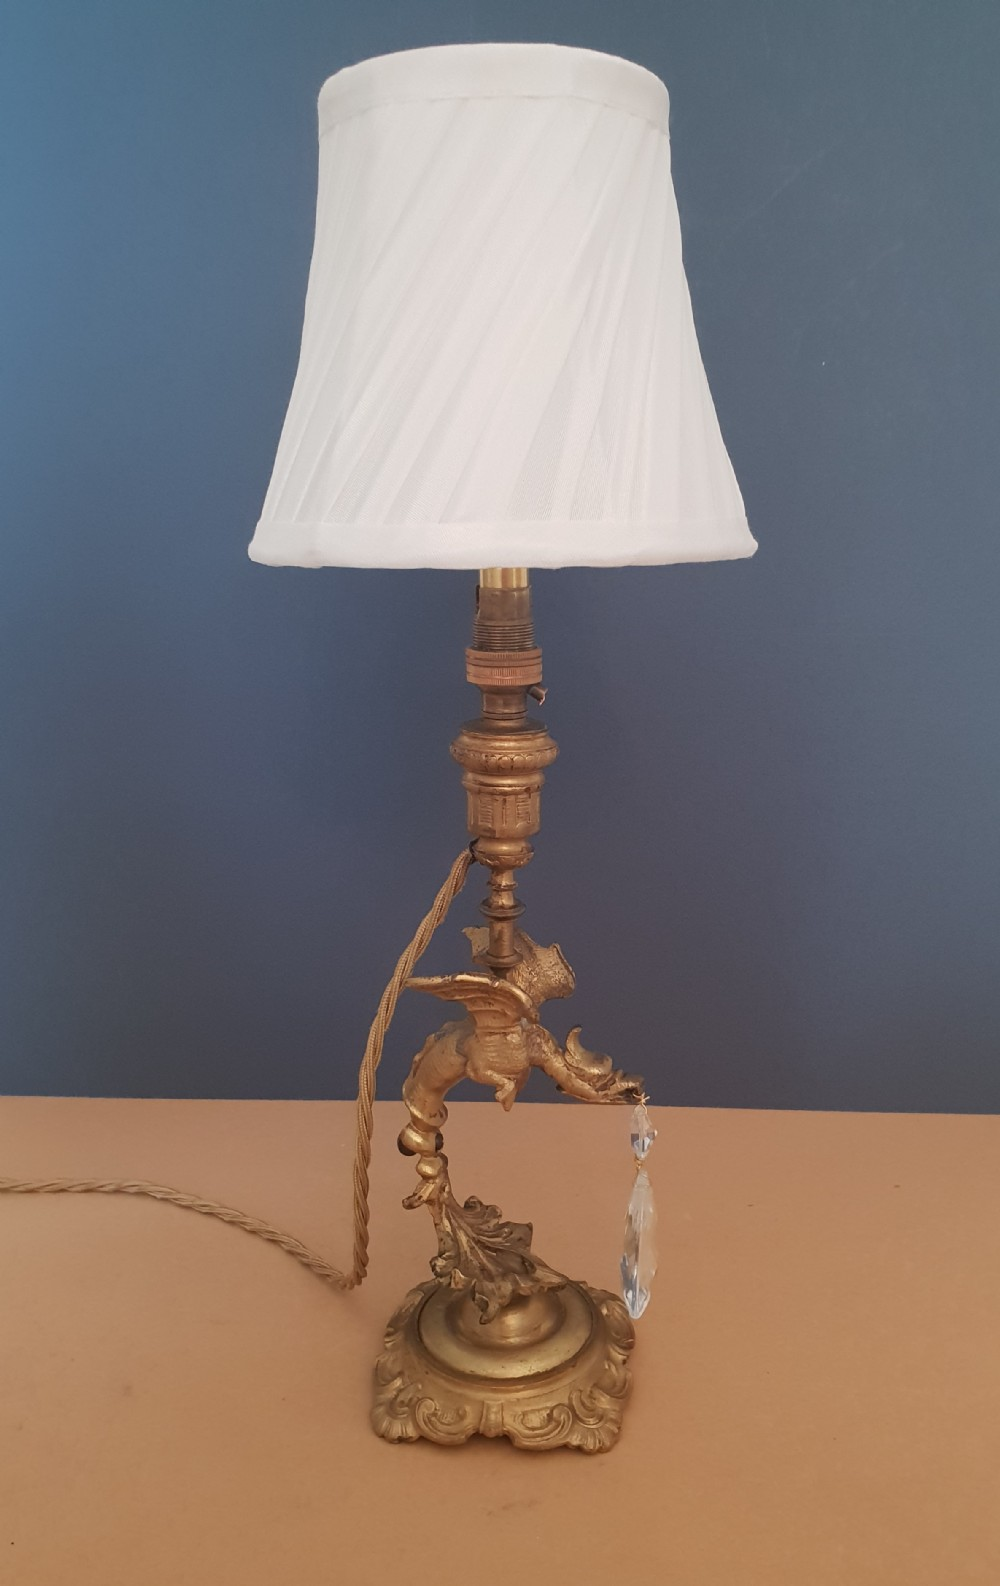 Small dragon table lamp rewired and pat tested 556299